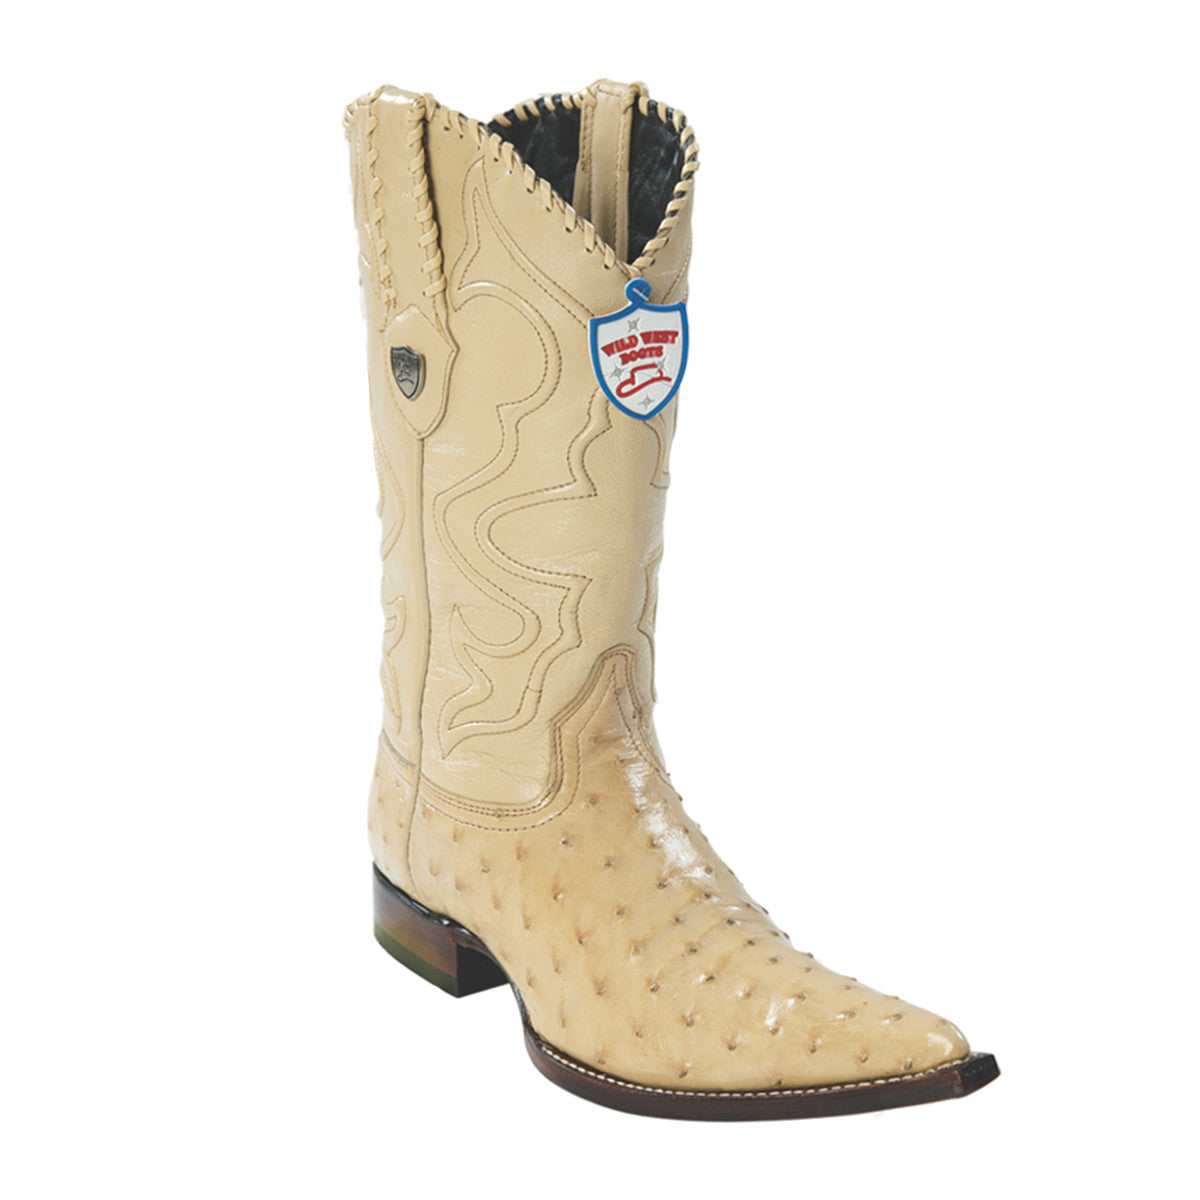 Wild West Boots H95 3x Toe Ostrich - Oryx